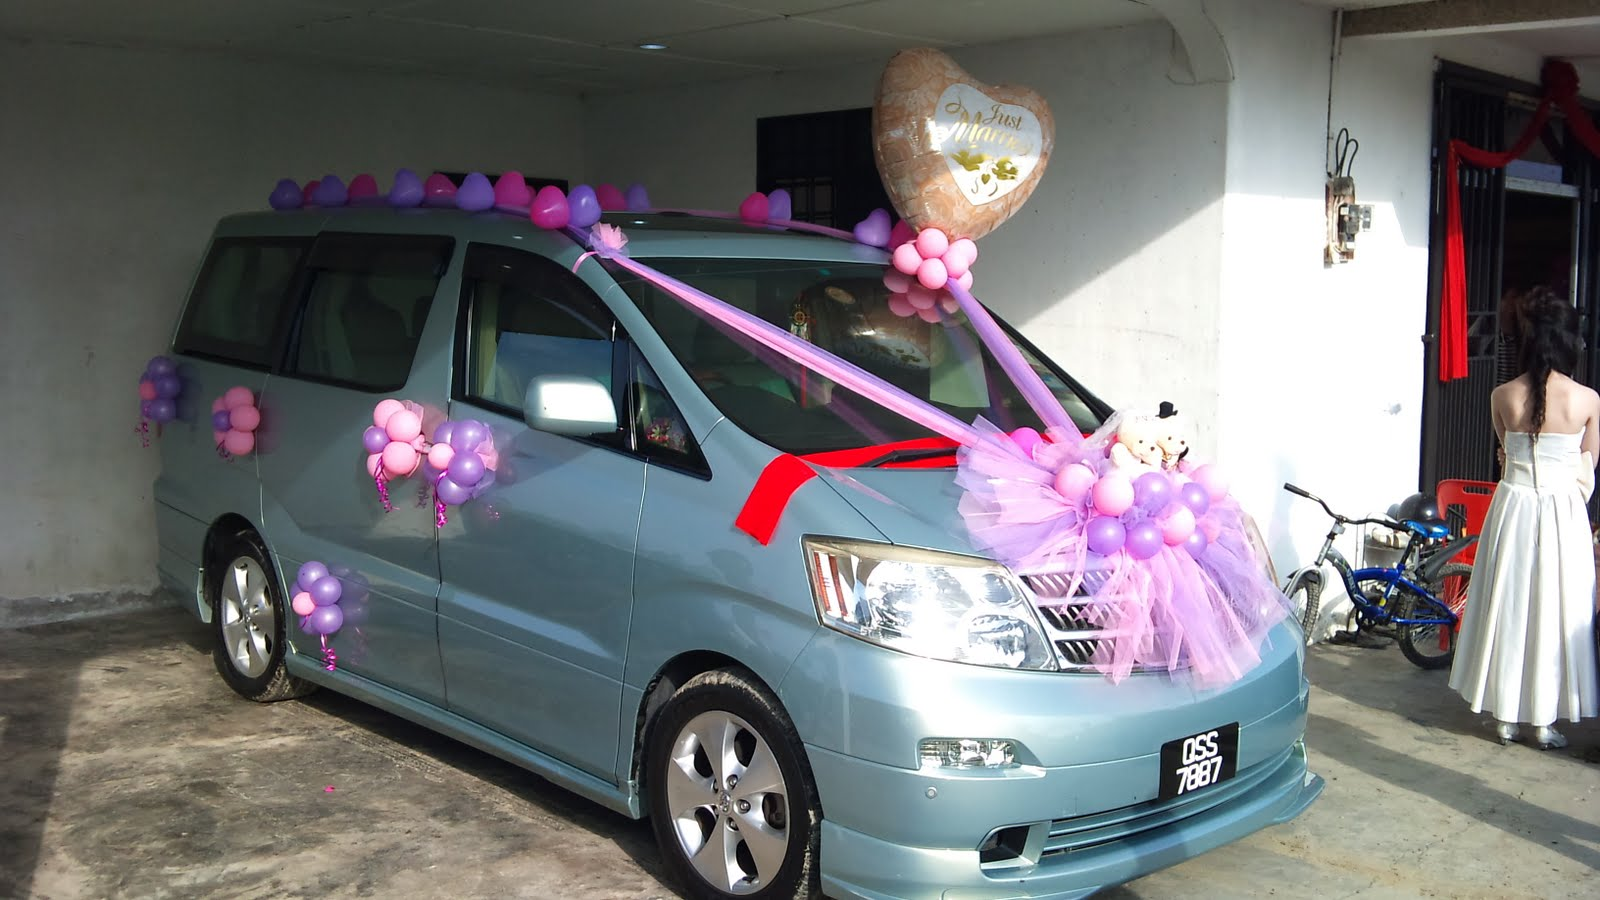 stunning-design-of-the-car-decoration-for-birthday-with-purple-ettiquette-ideas-with-balloon-ideas